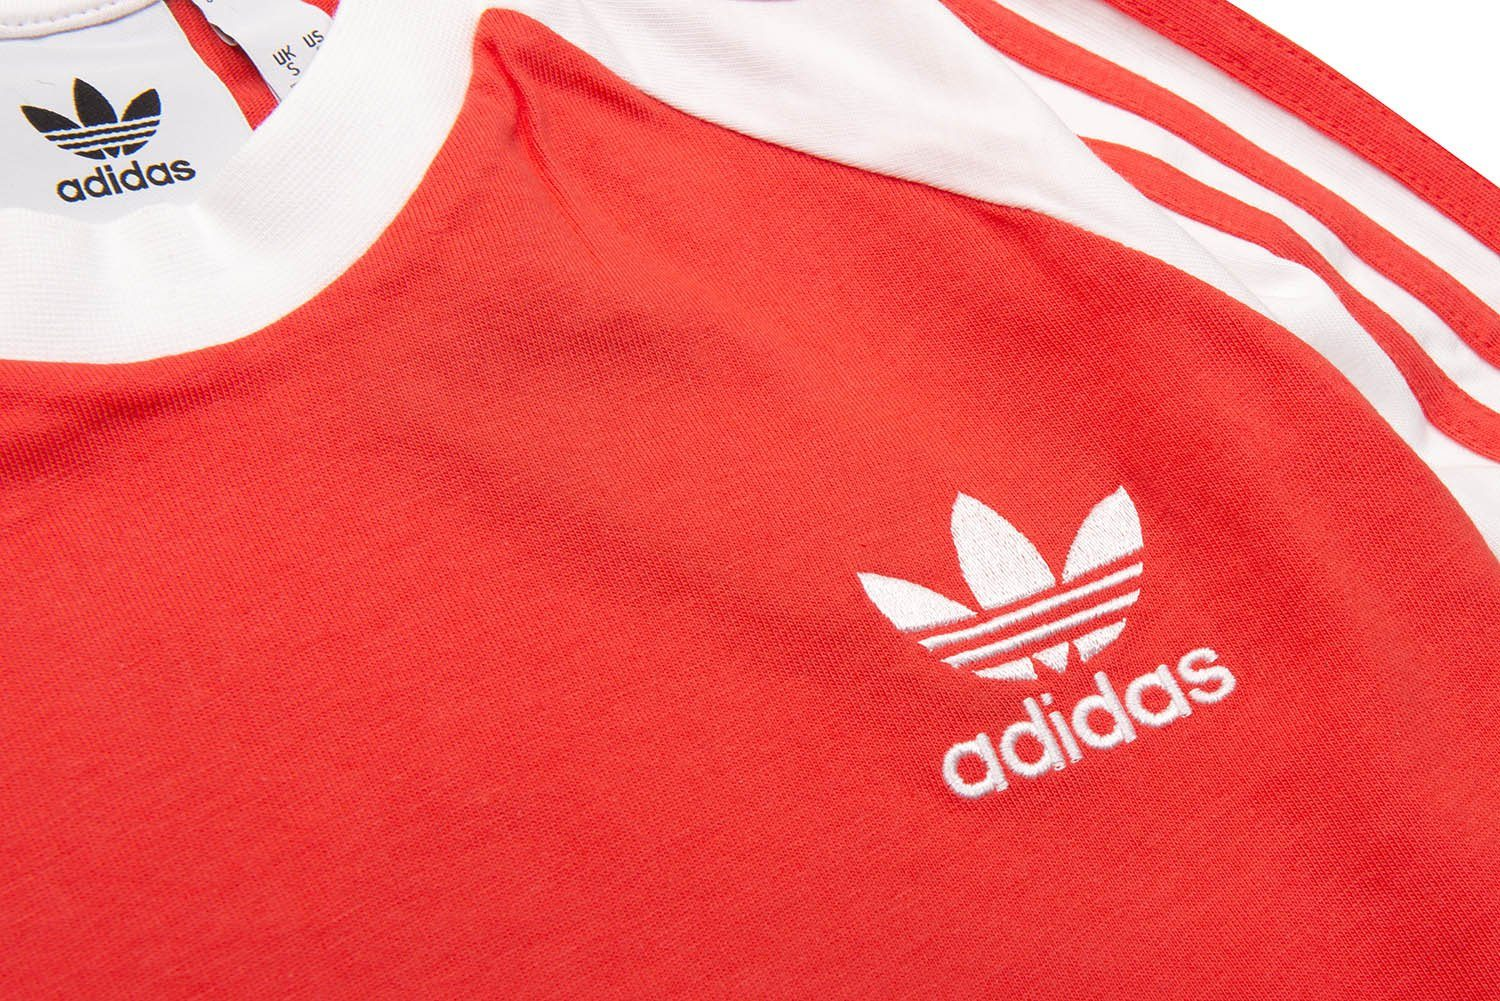 Adidas 3 Stripe Long Sleeved Tee in Bright Red